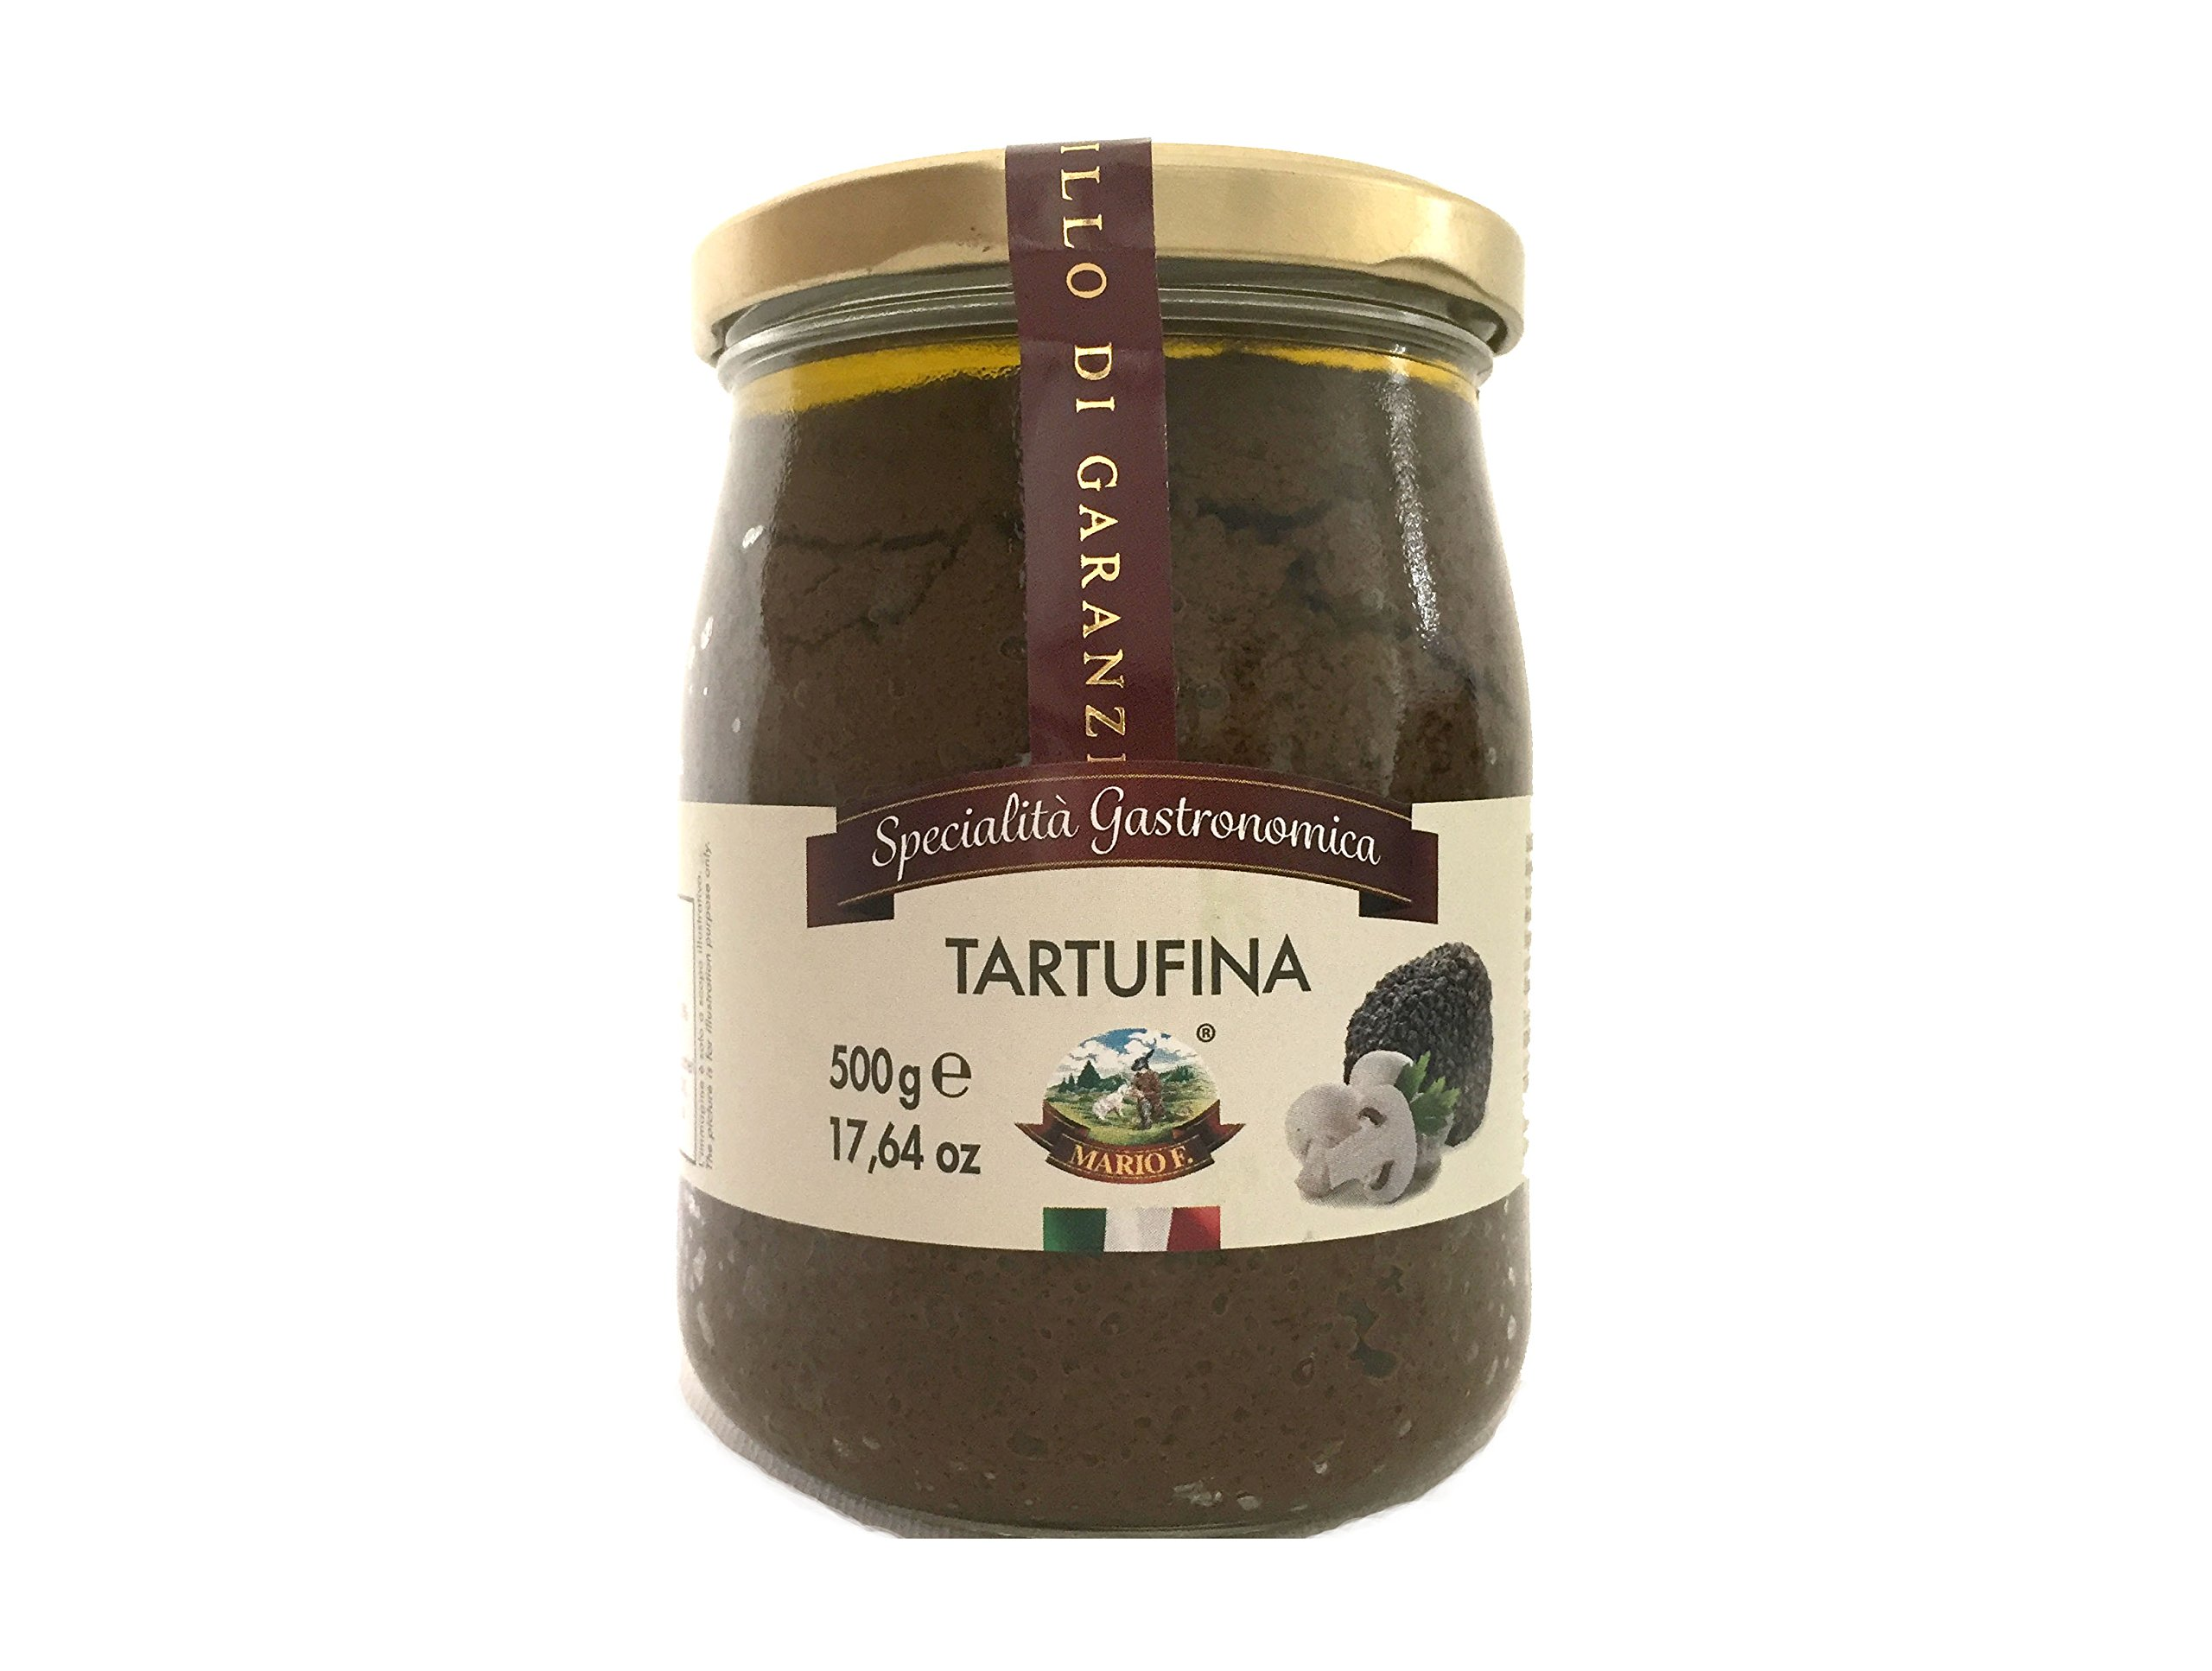 Fungo&Tartufo Tartufina Mushrooms and Truffle Sauce, 17.6 oz